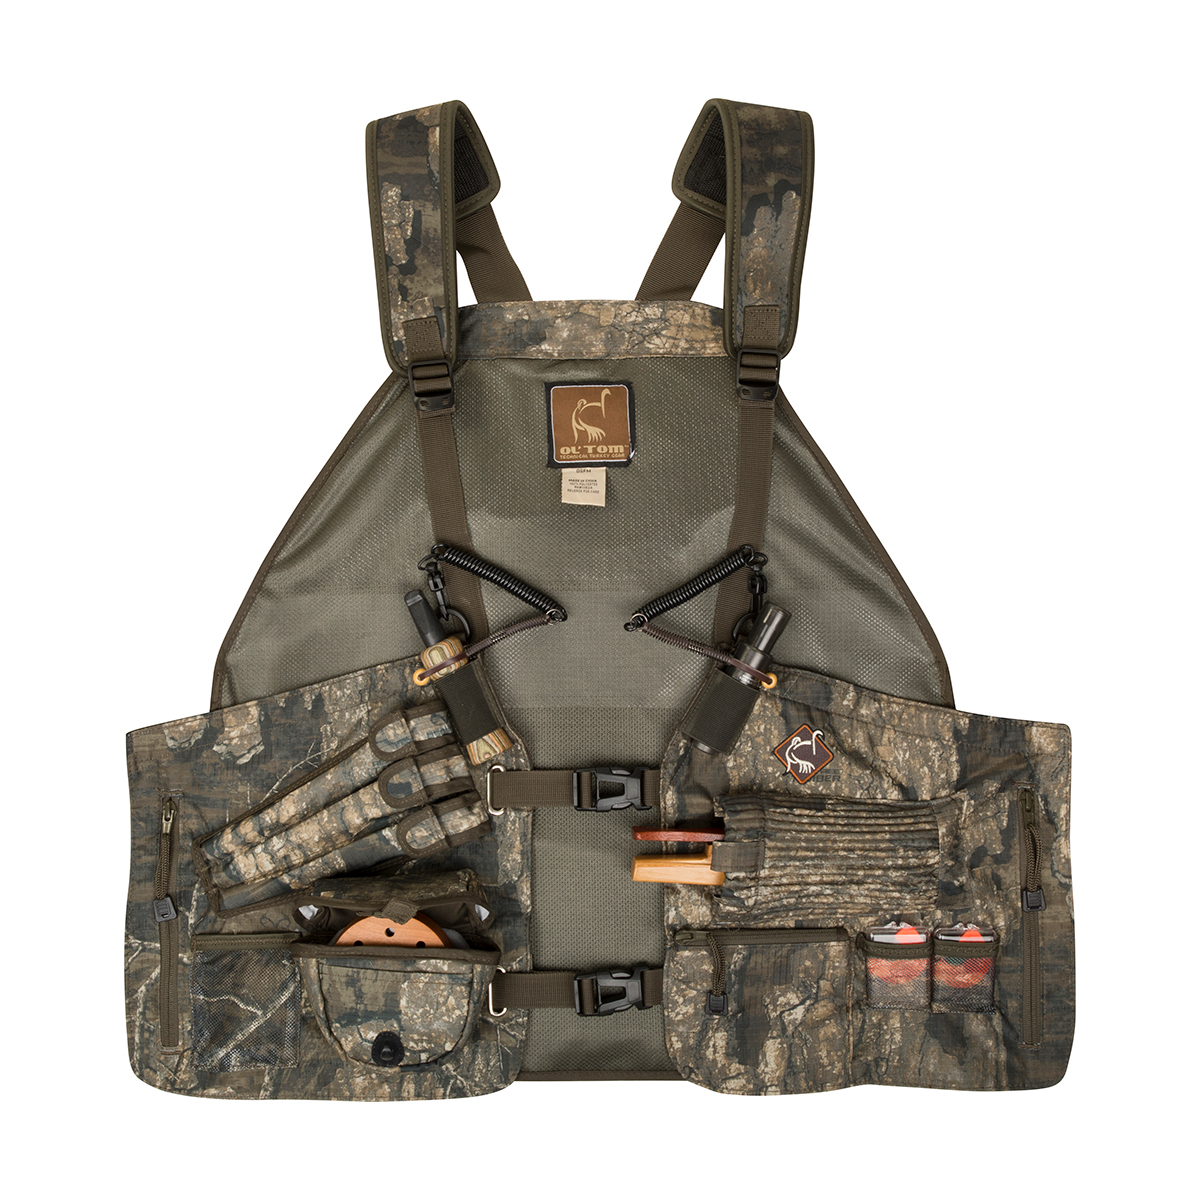 Drake-Ol-Tom-Easy-Rider-Turkey-Vest-Realtree-Timber-Big-Tall-BigCamo